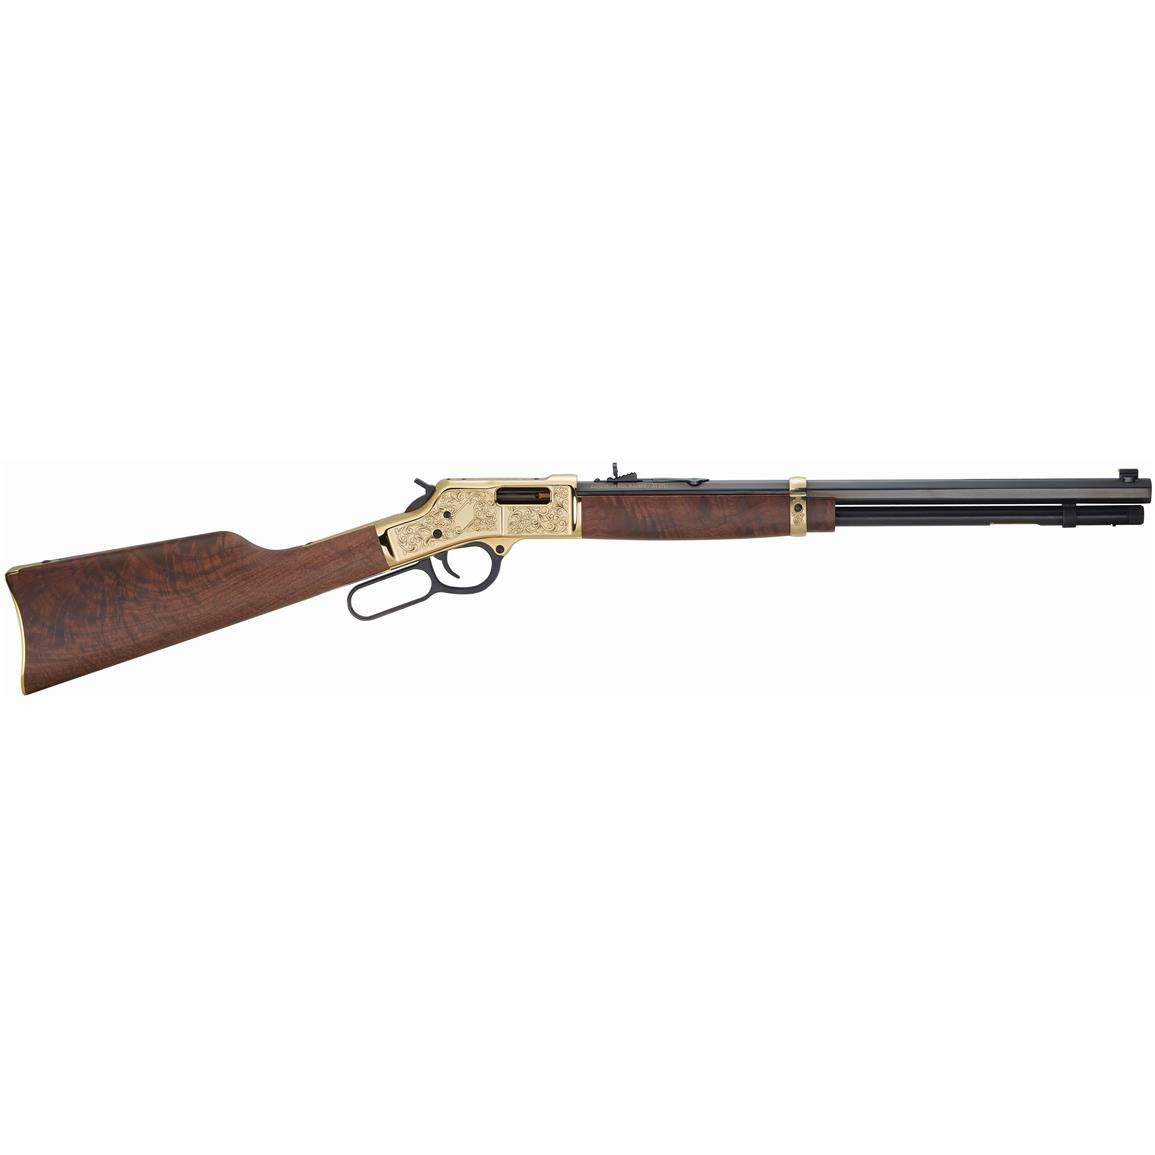 "Henry Big Boy Deluxe 3rd, Lever Action, .44 Magnum, 20"" Barrel, 10+1 Rounds"